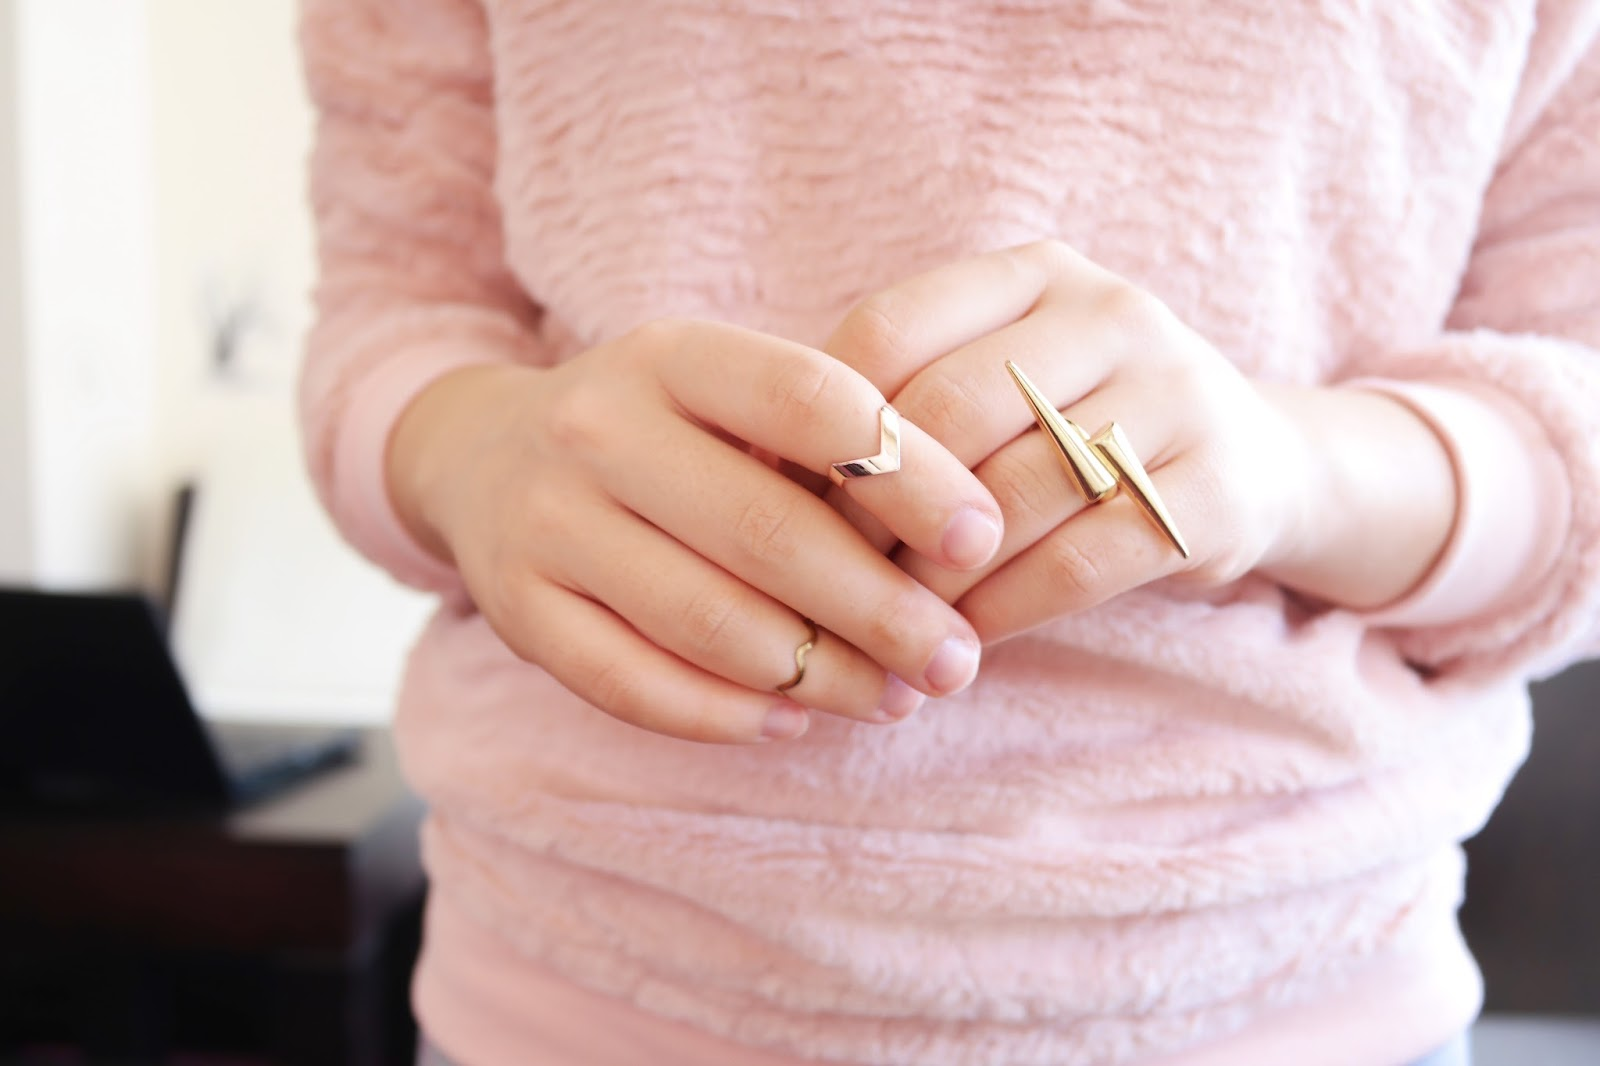 dainty rings jewellery gold knuckle rings